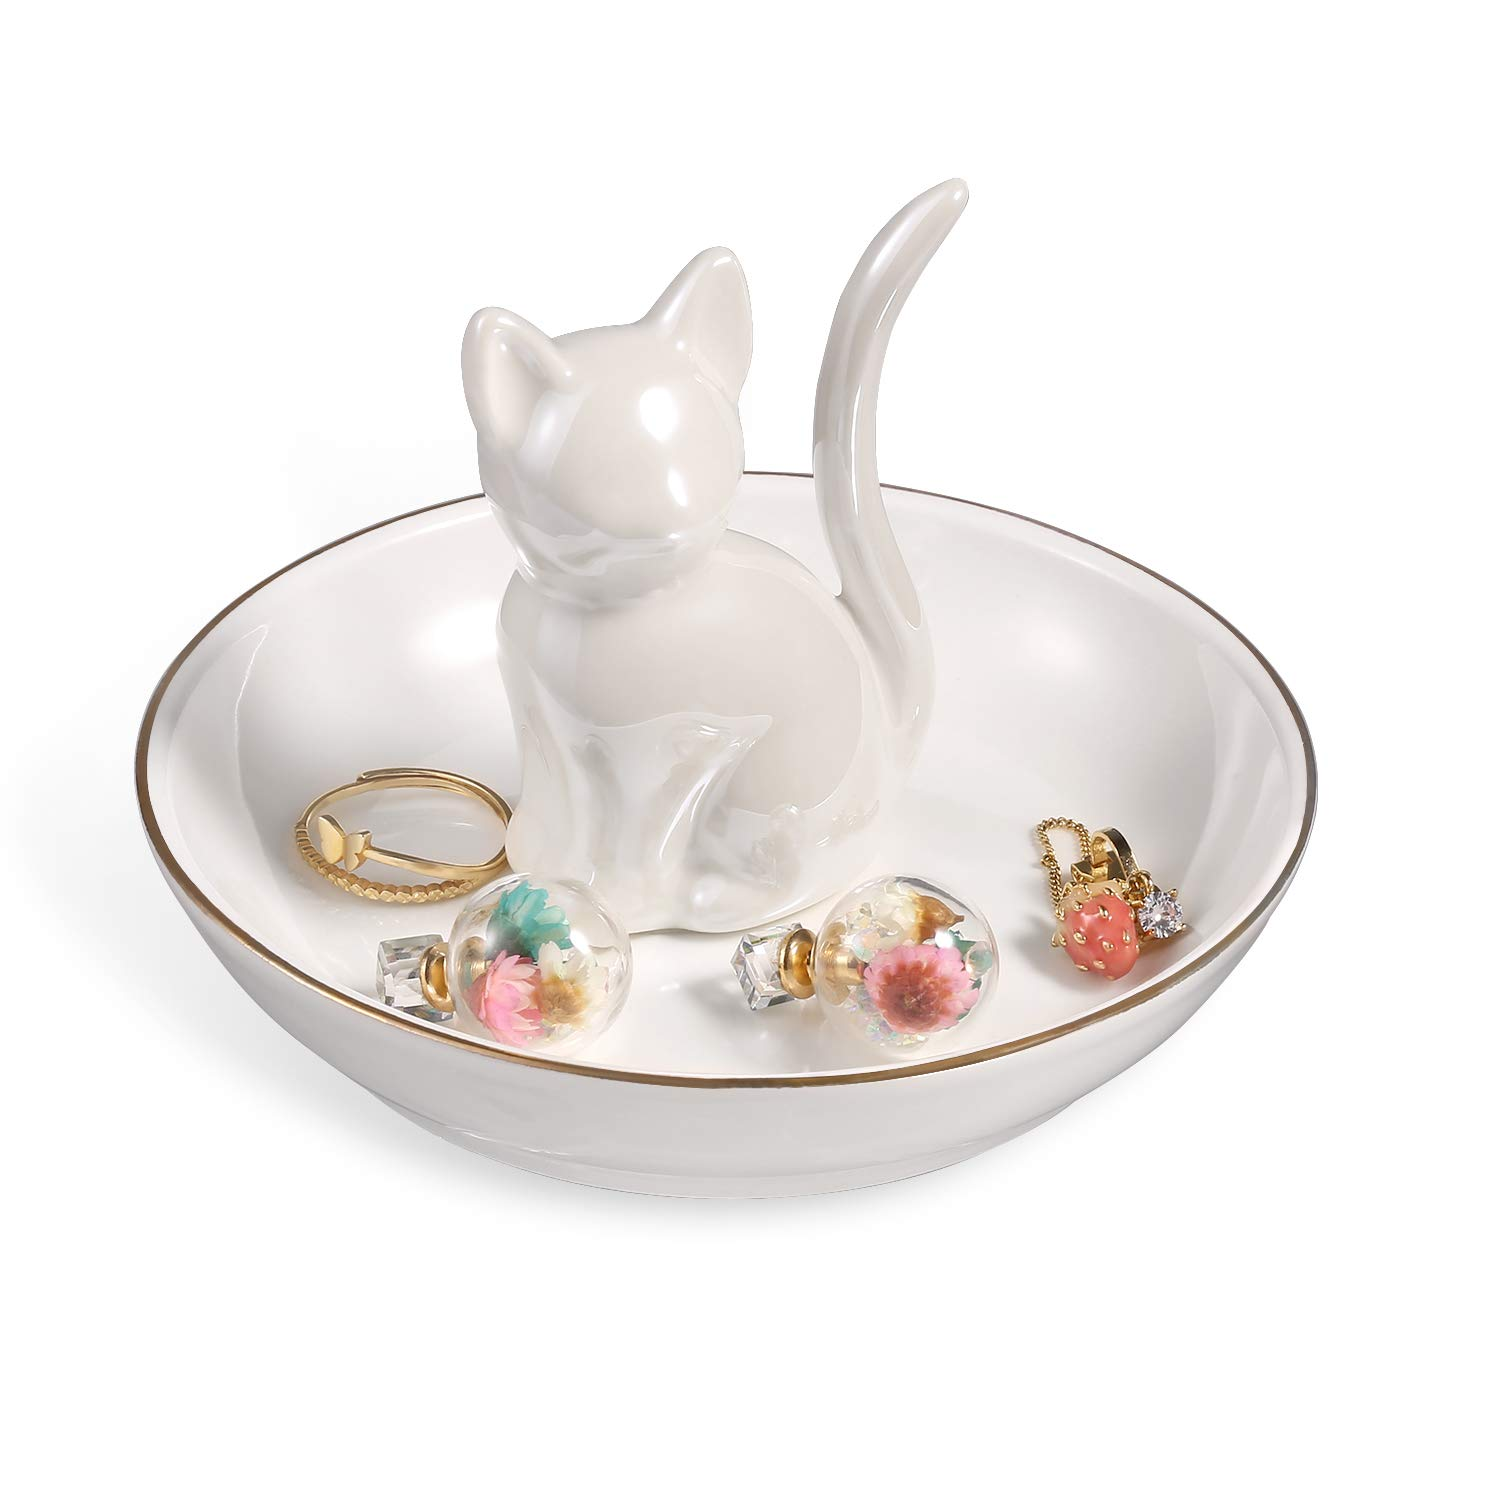 ROSA ROSE Cat Ring Holder Trinket Tray Ceramic Jewelry Dish Porcelain Home Decor Pearl White